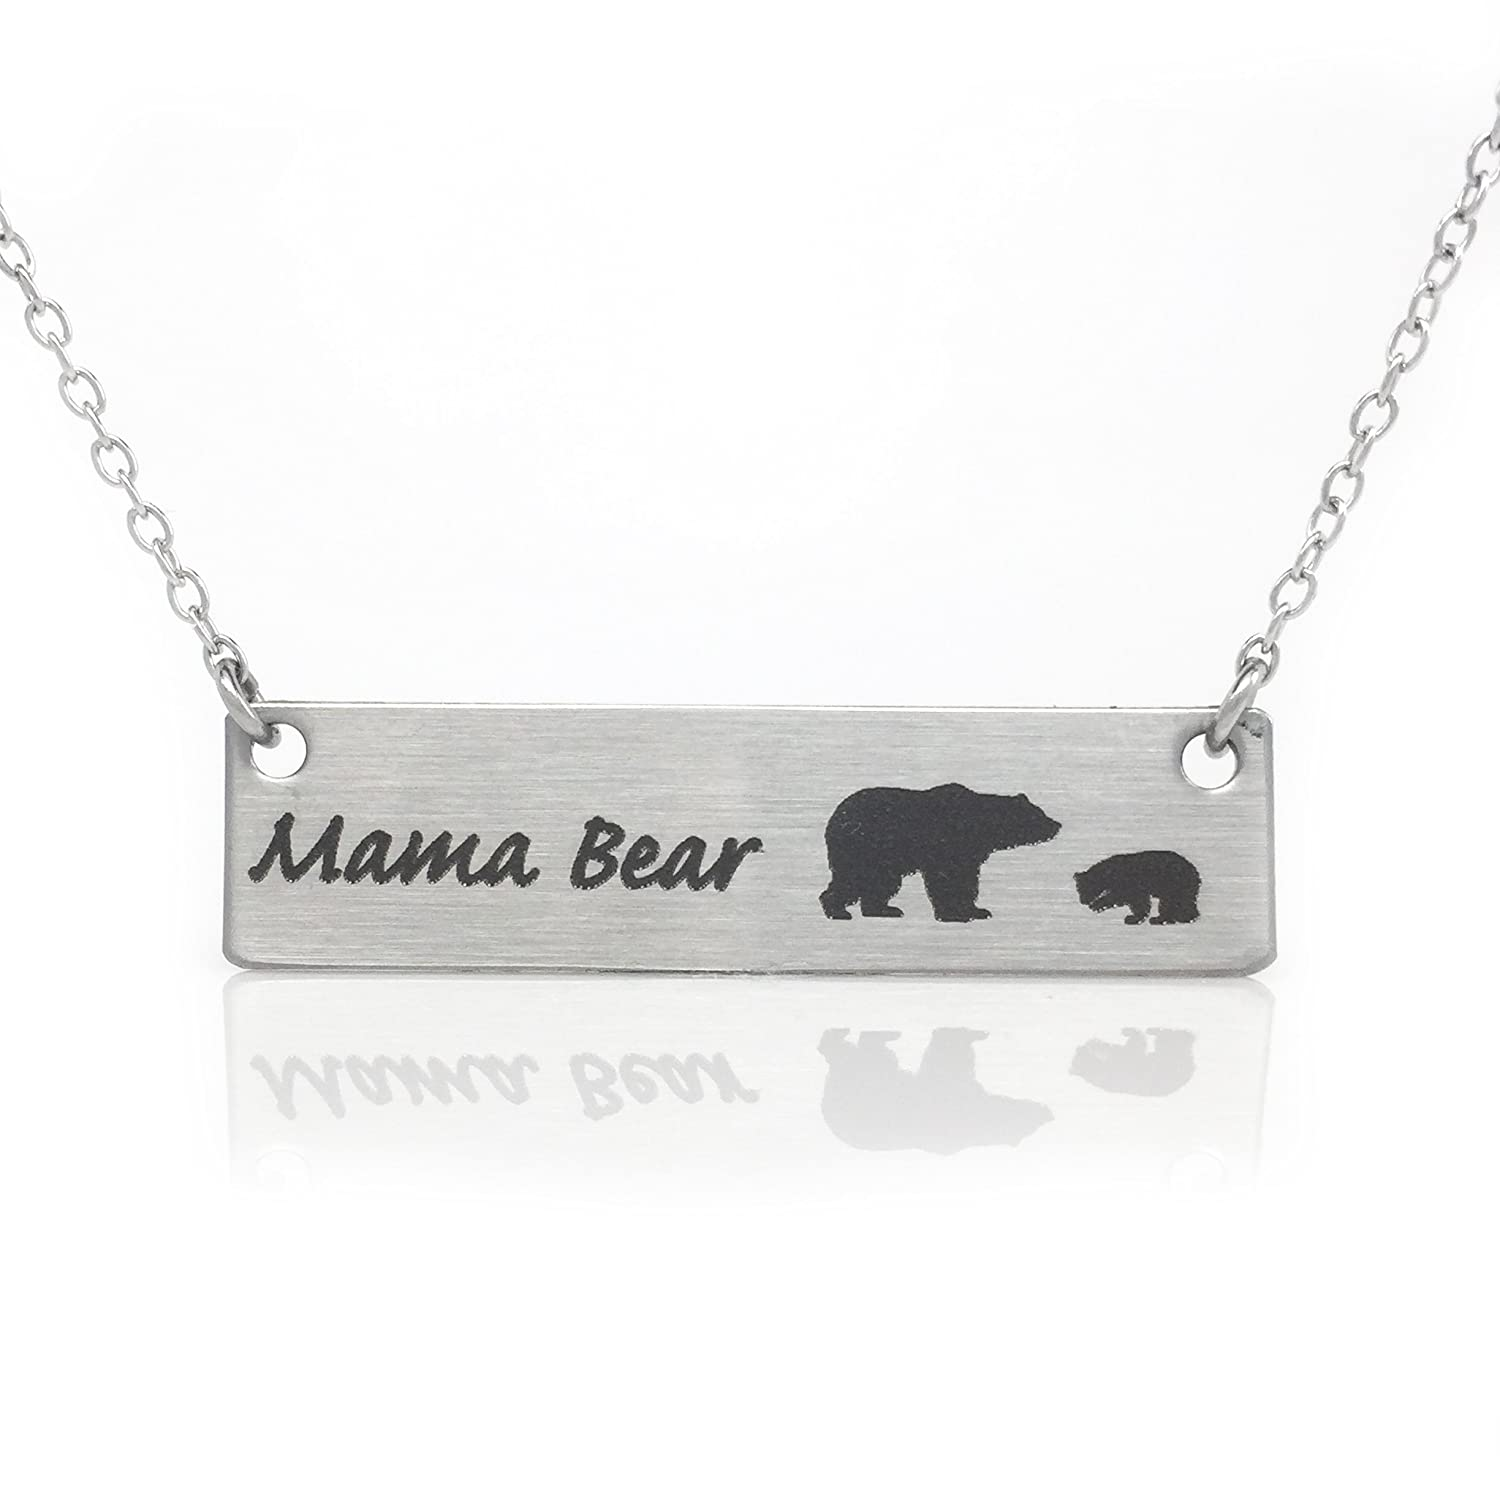 mama product of image am rebekahgough necklace screen shot bar bear at